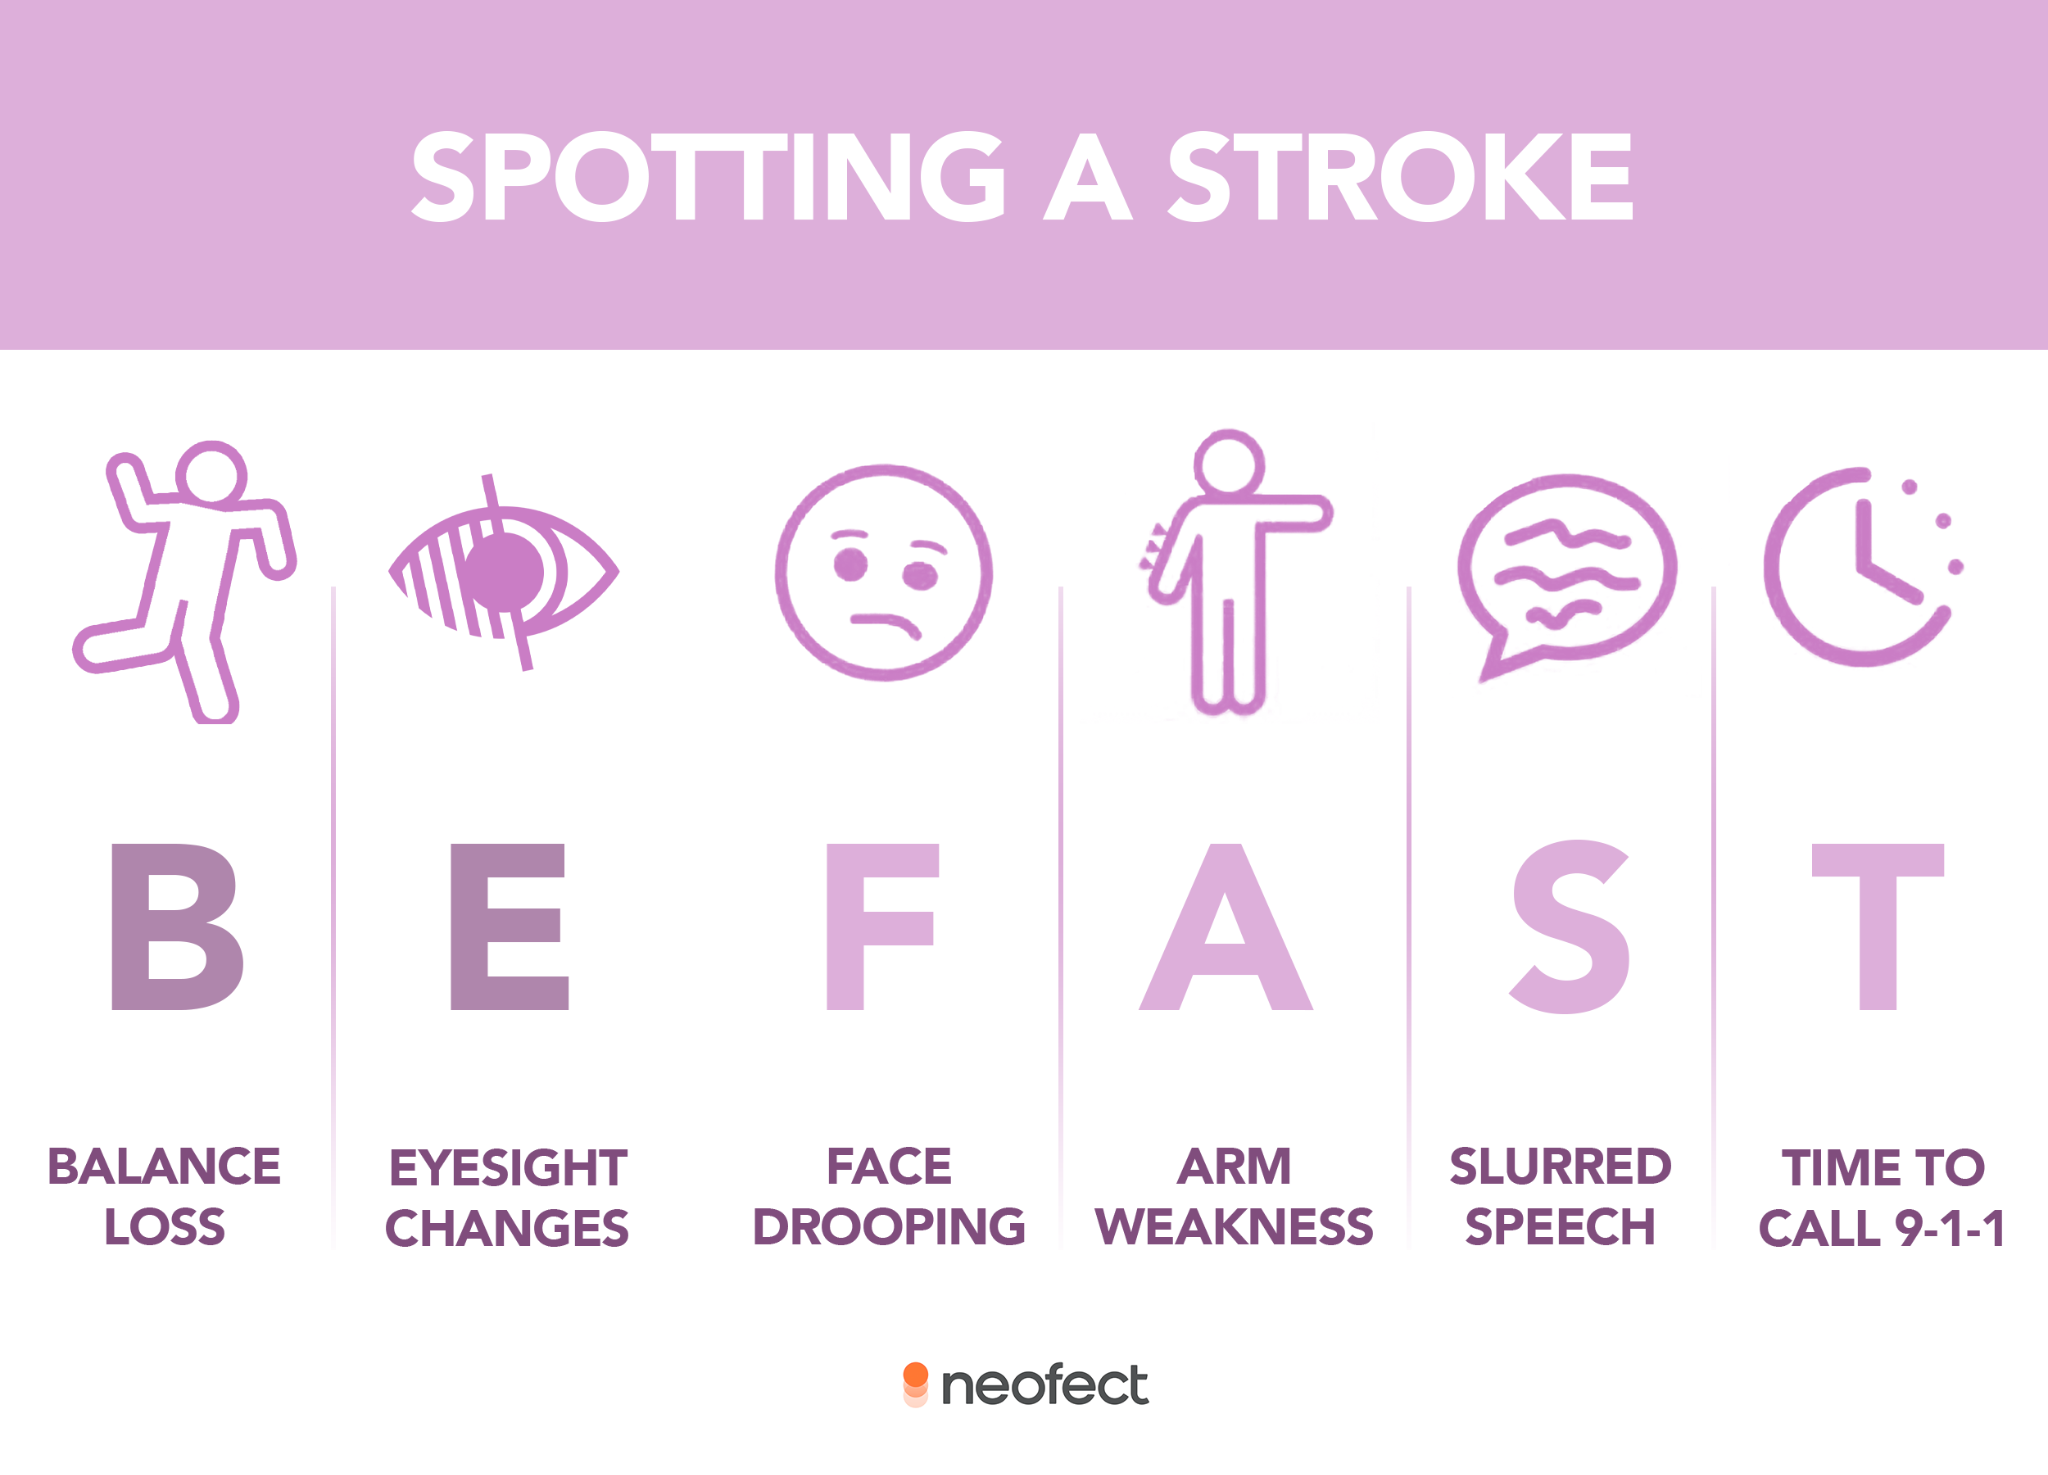 Early warning signs of stroke that you need to know